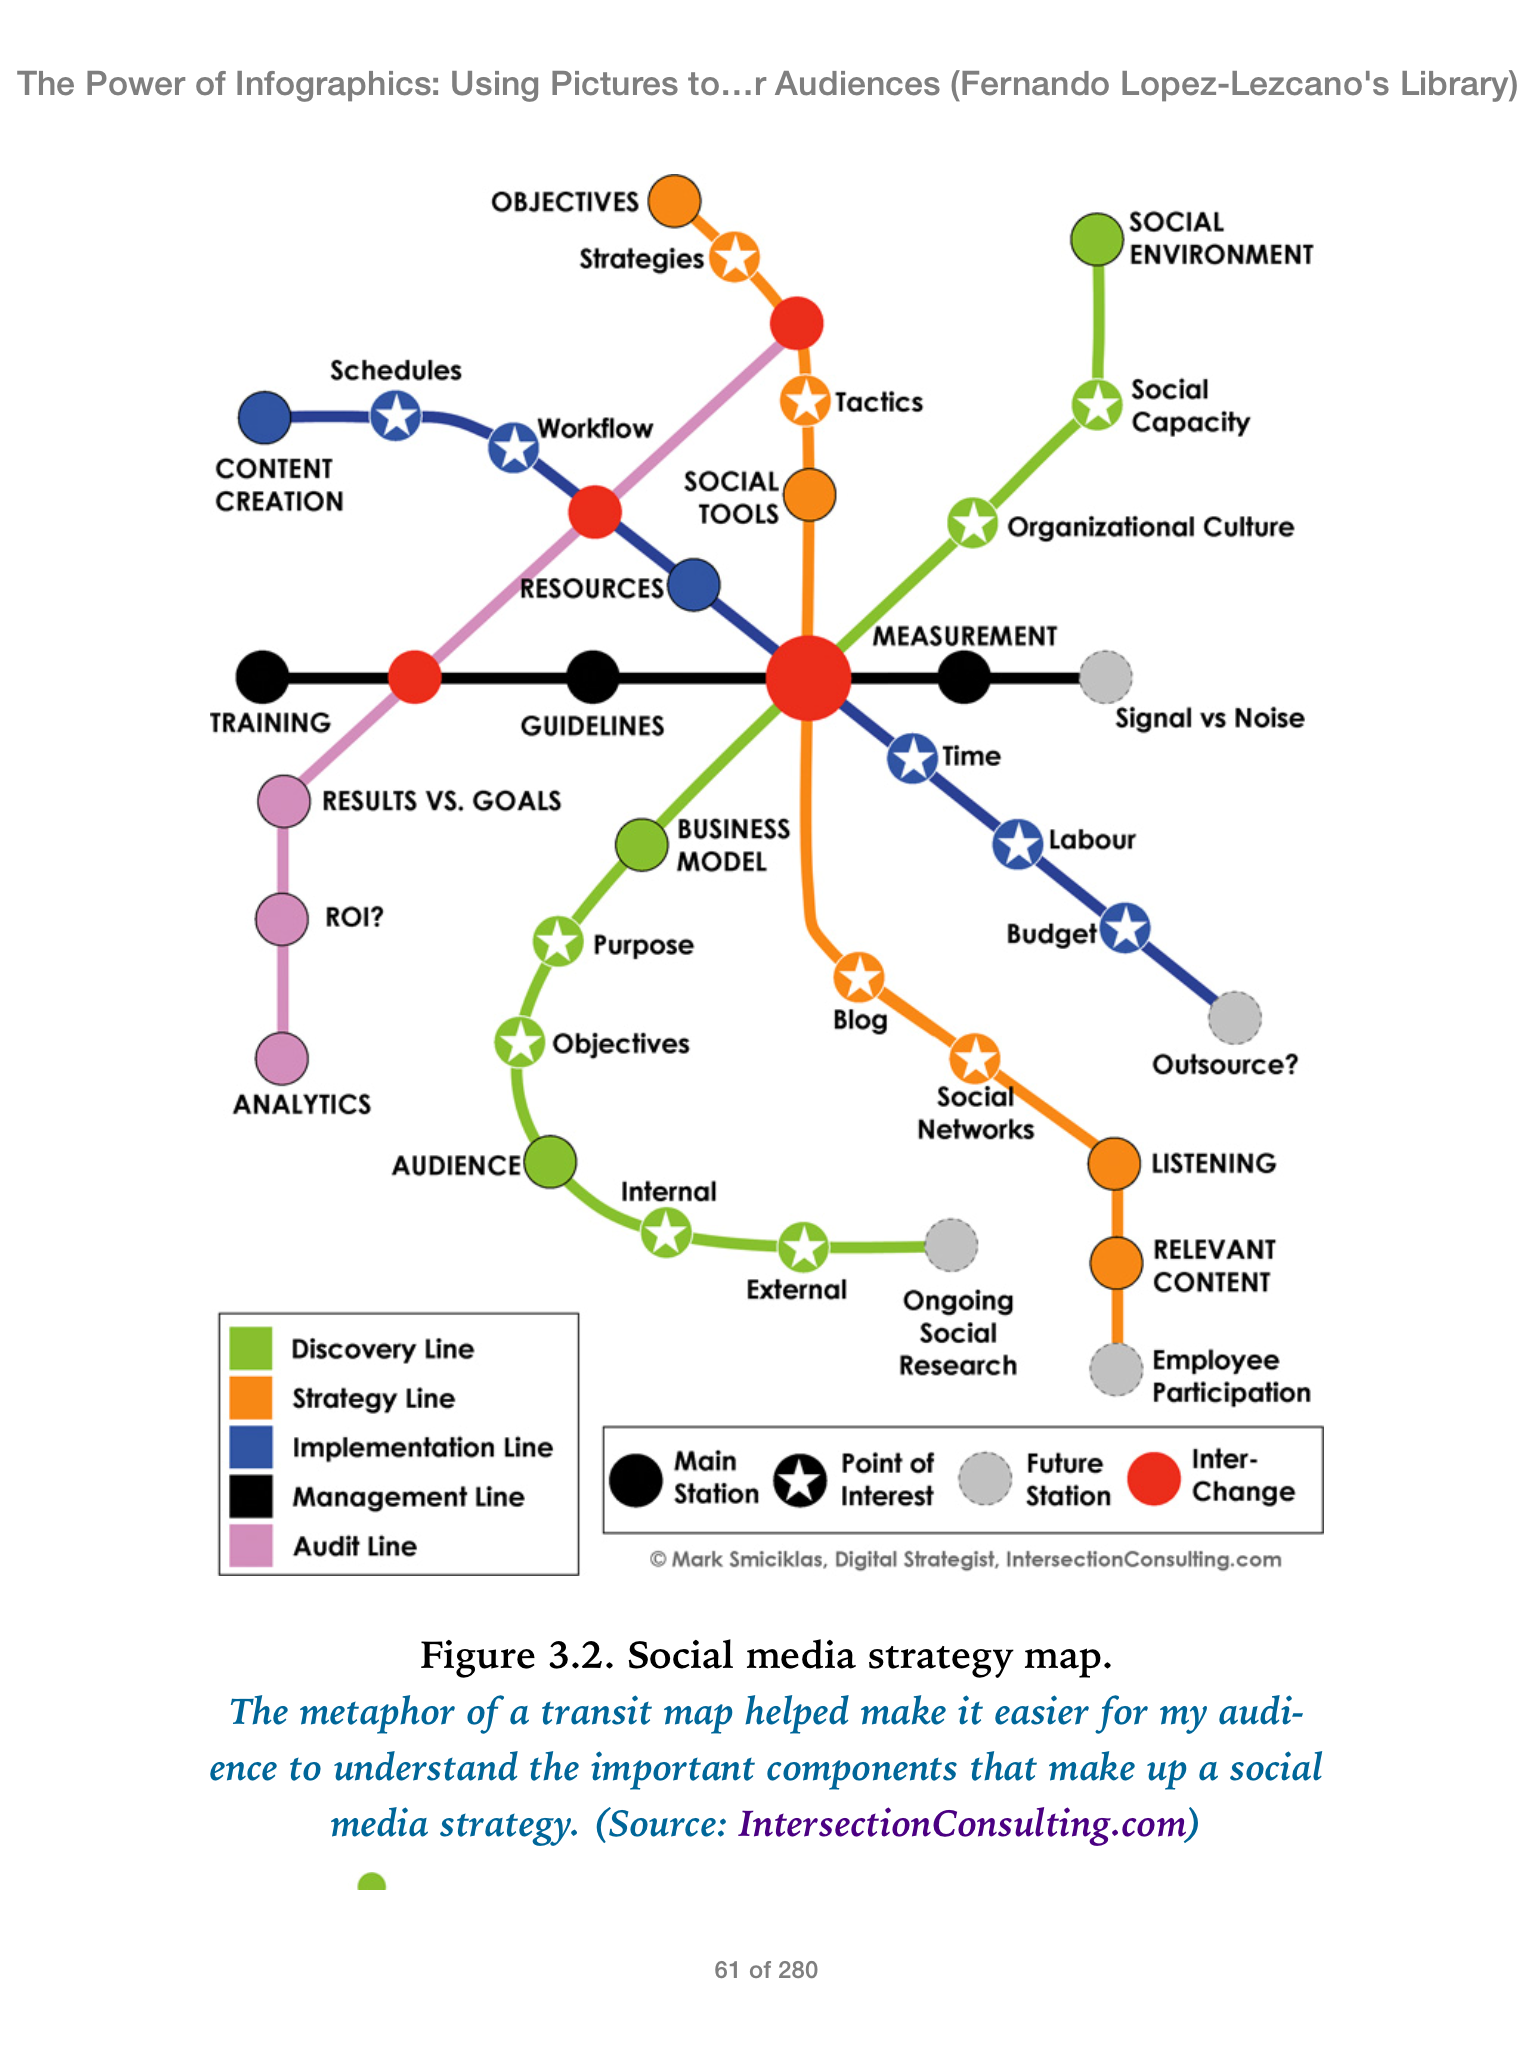 Book Review James Kennedy Hydrogen Fuel Cell Diagram Infographic The Power Of Infographics